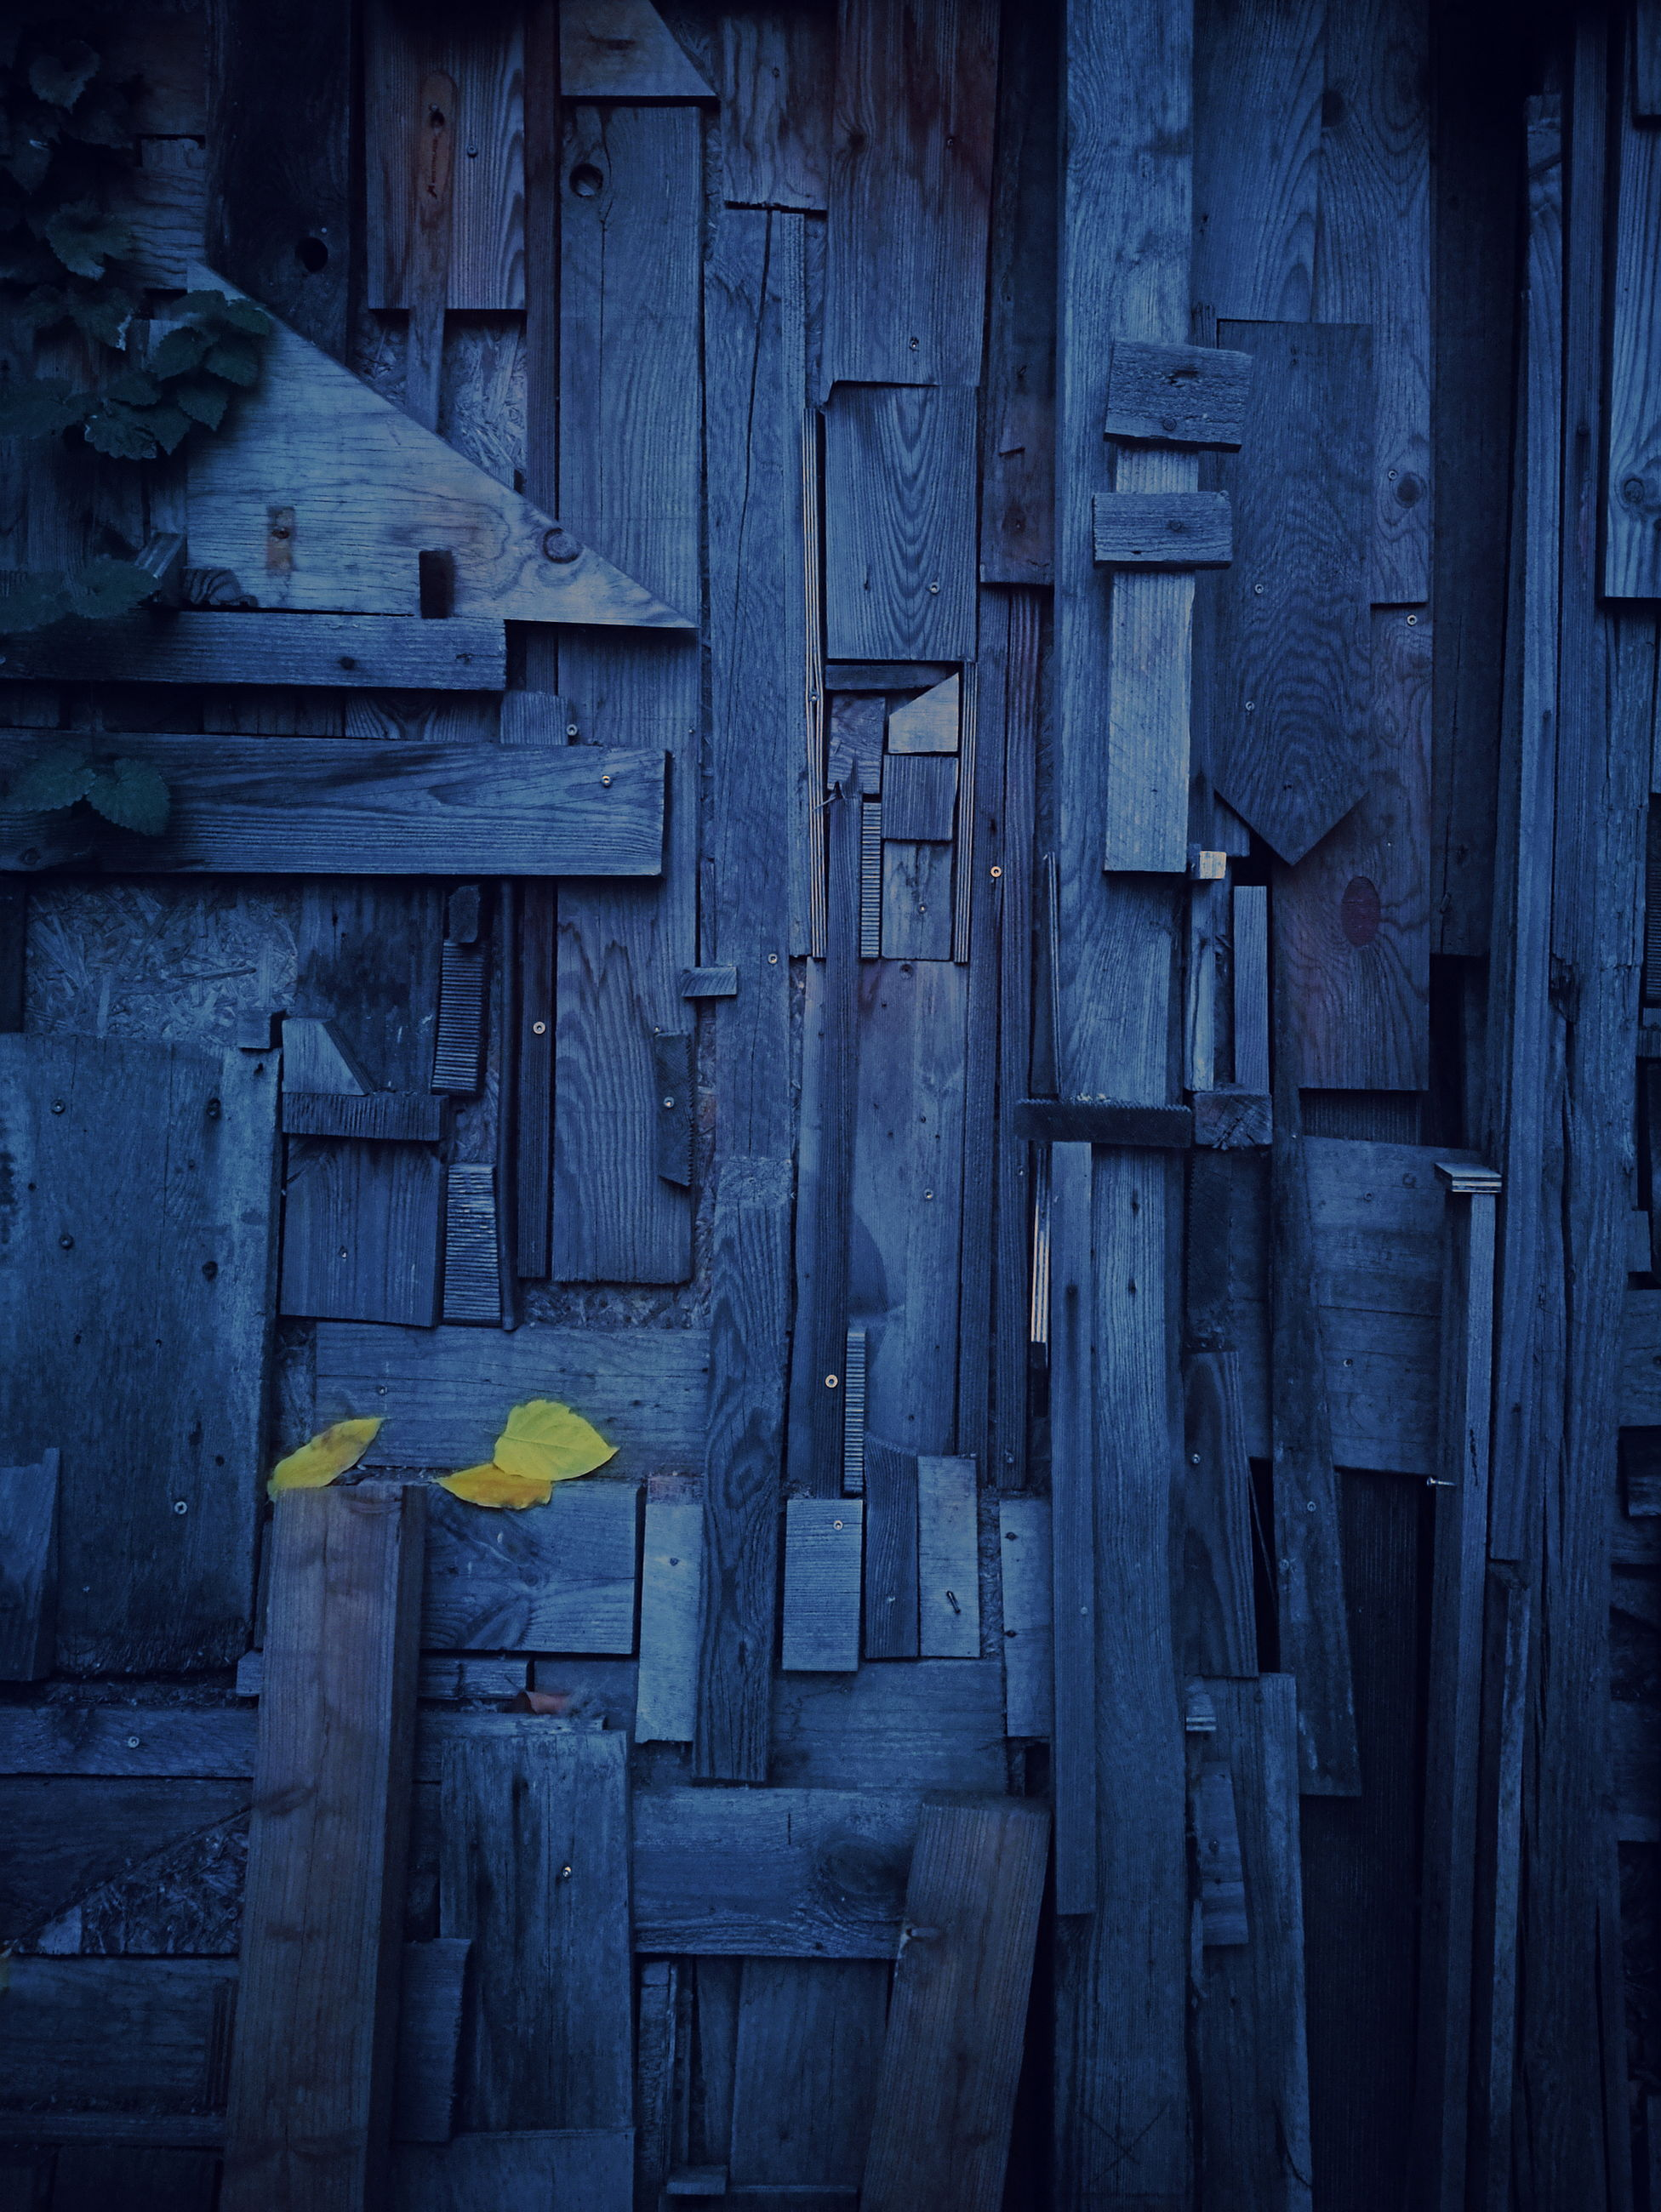 wood - material, architecture, built structure, no people, yellow, day, door, entrance, blue, building exterior, outdoors, old, nature, full frame, wall - building feature, wood, close-up, flower, flowering plant, abandoned